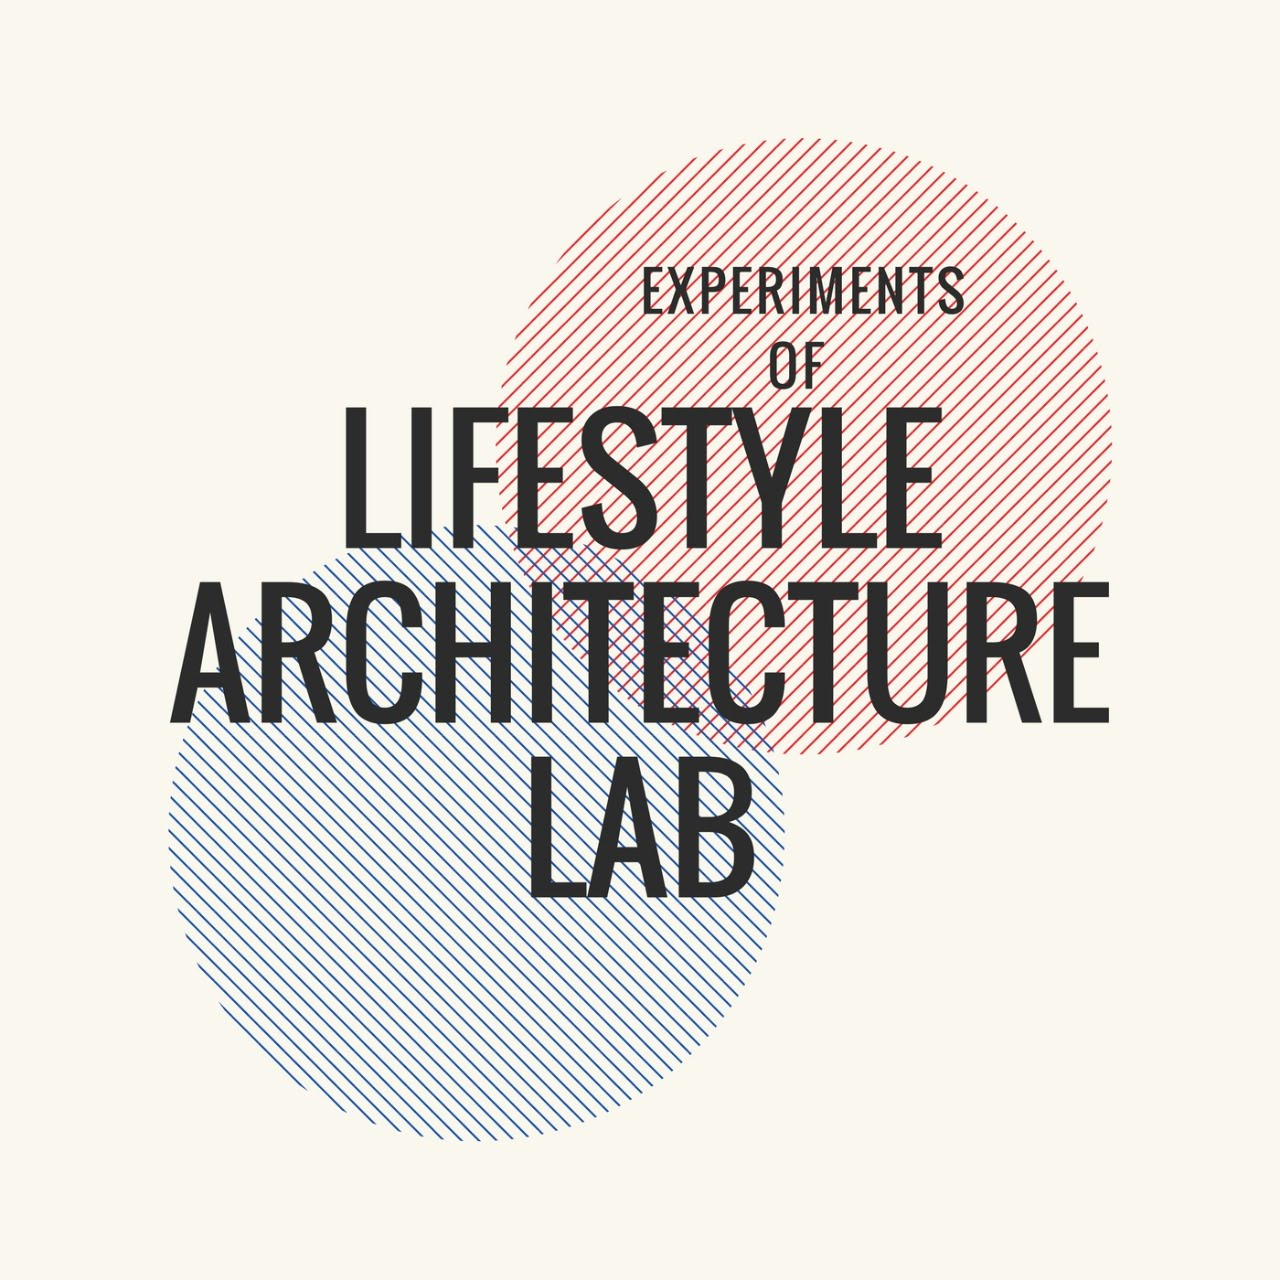 Avatar - Lifestyle Architecture Lab